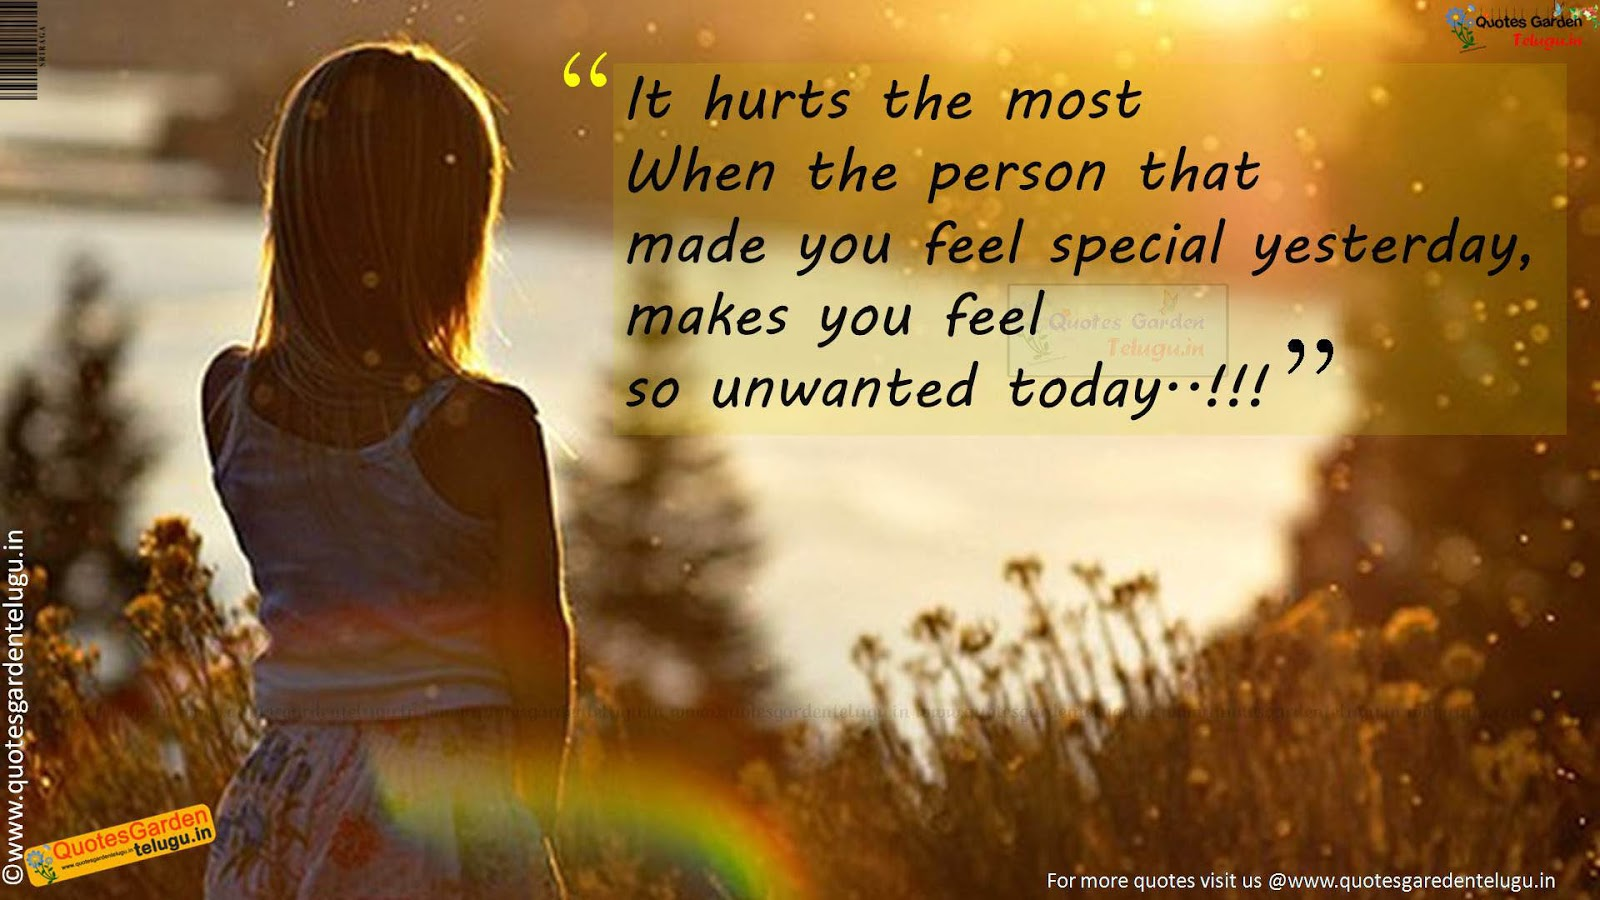 Heart Touching Love Quote Wallpapers Heart Touching Love Status For Whatsapp With Hd Wallpapers